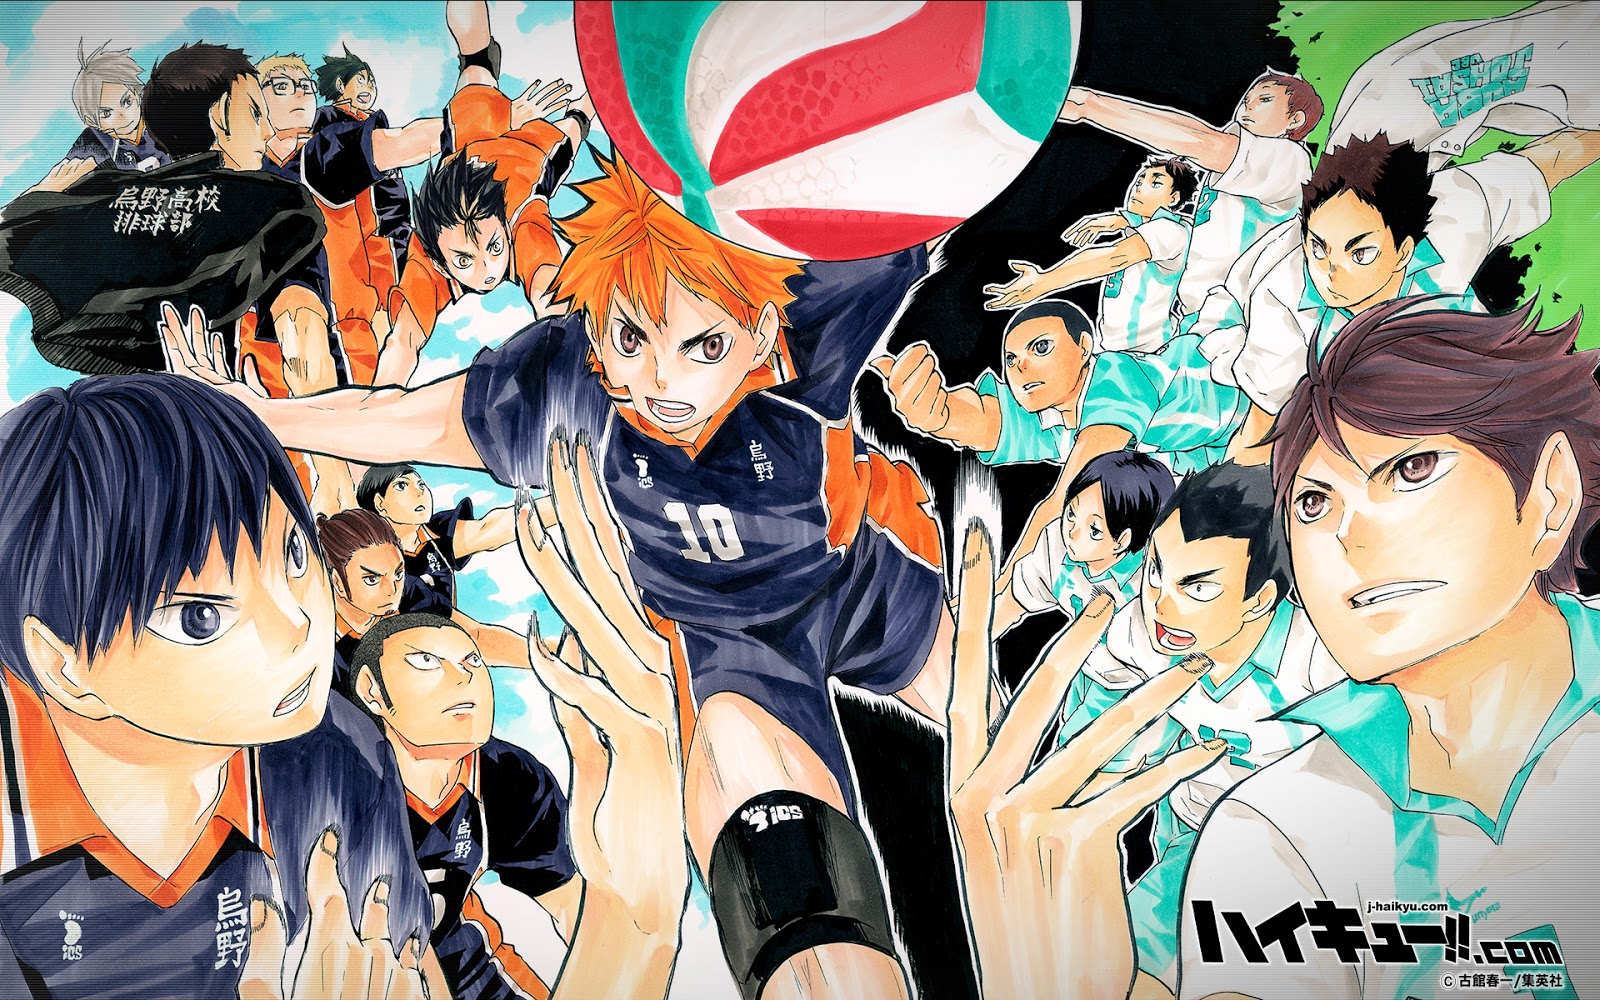 Inspired After Watching A Volleyball Ace Nicknamed Little Giant In Action Small Statured Shouyou Hinata Revives The Club At His Middle School